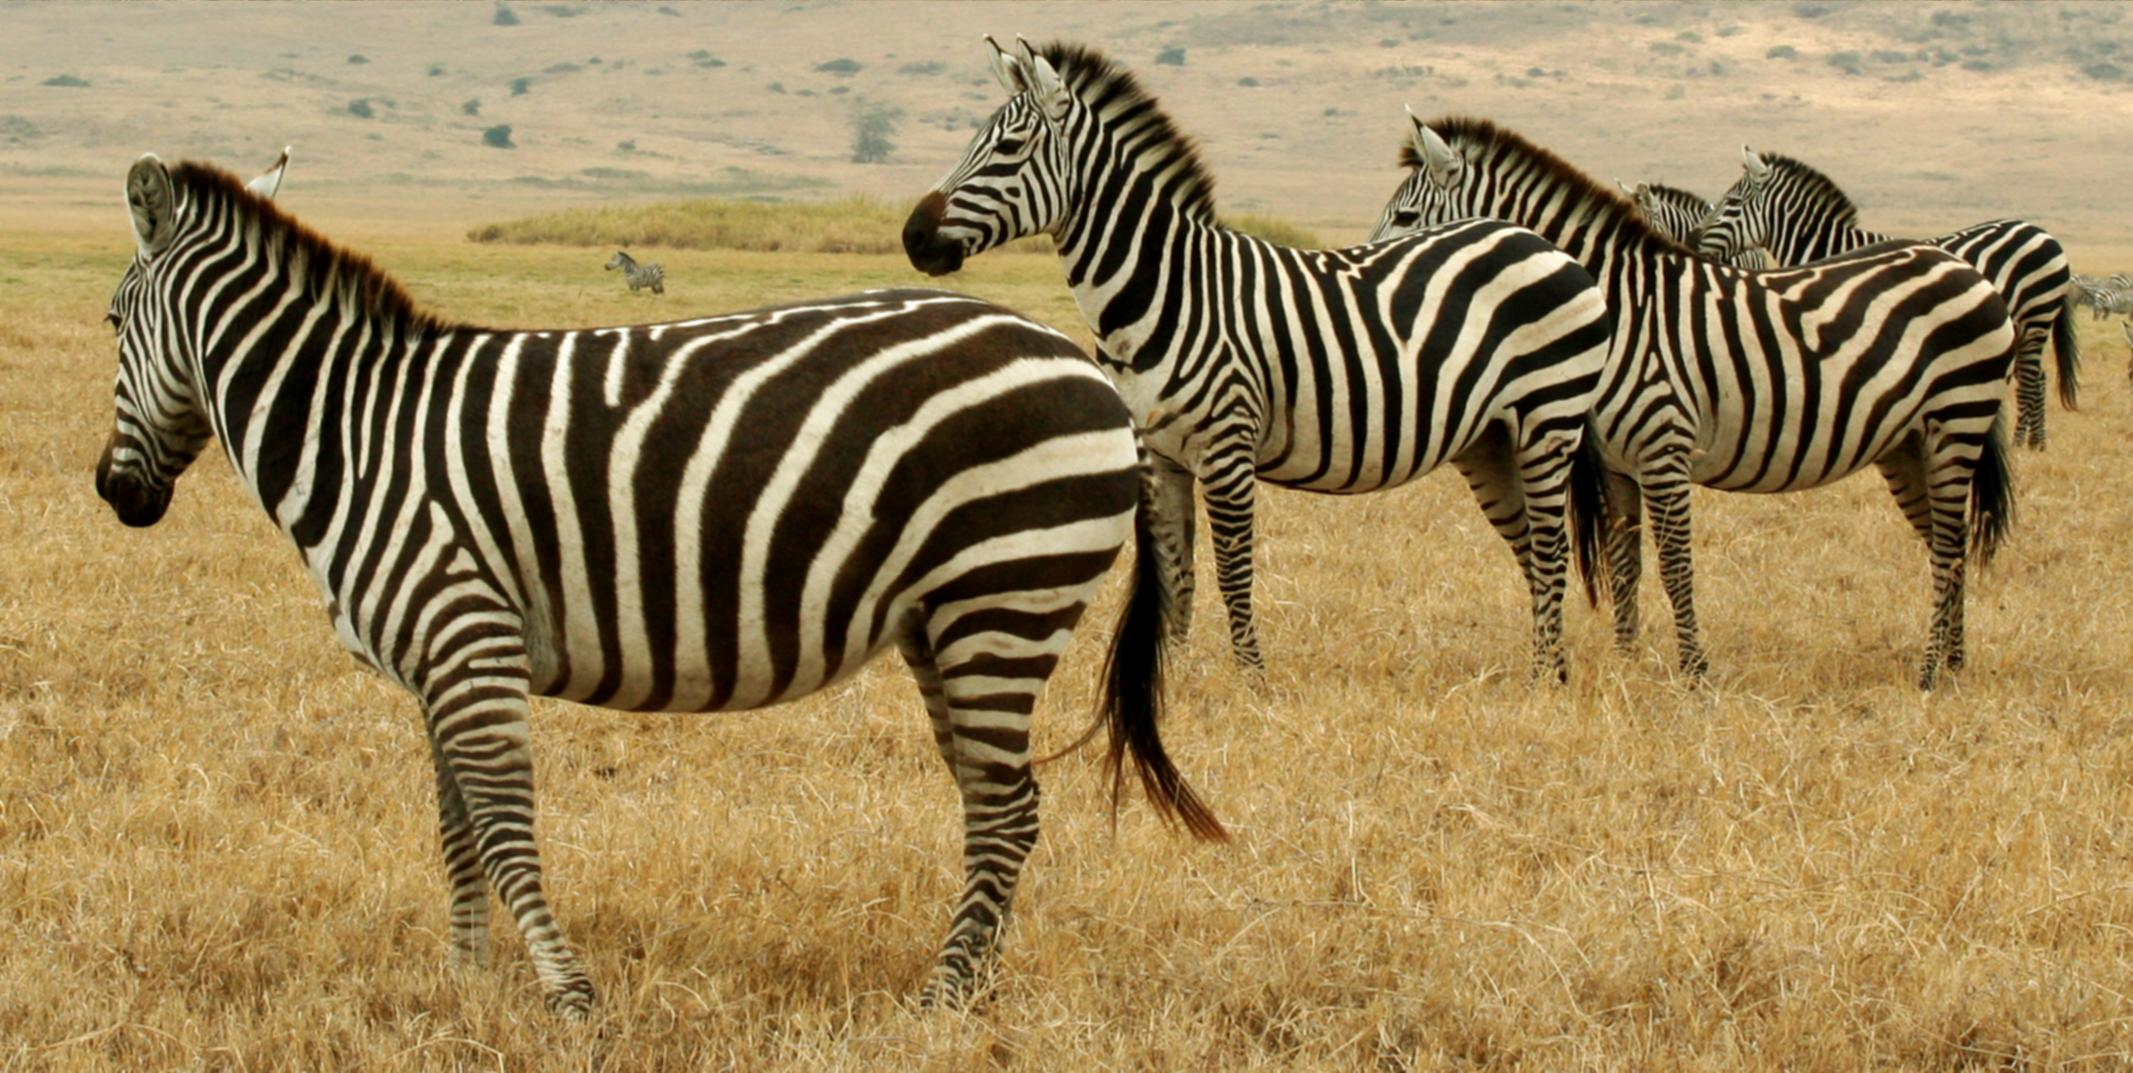 Zebras appear strikingly patterned to humans, ...